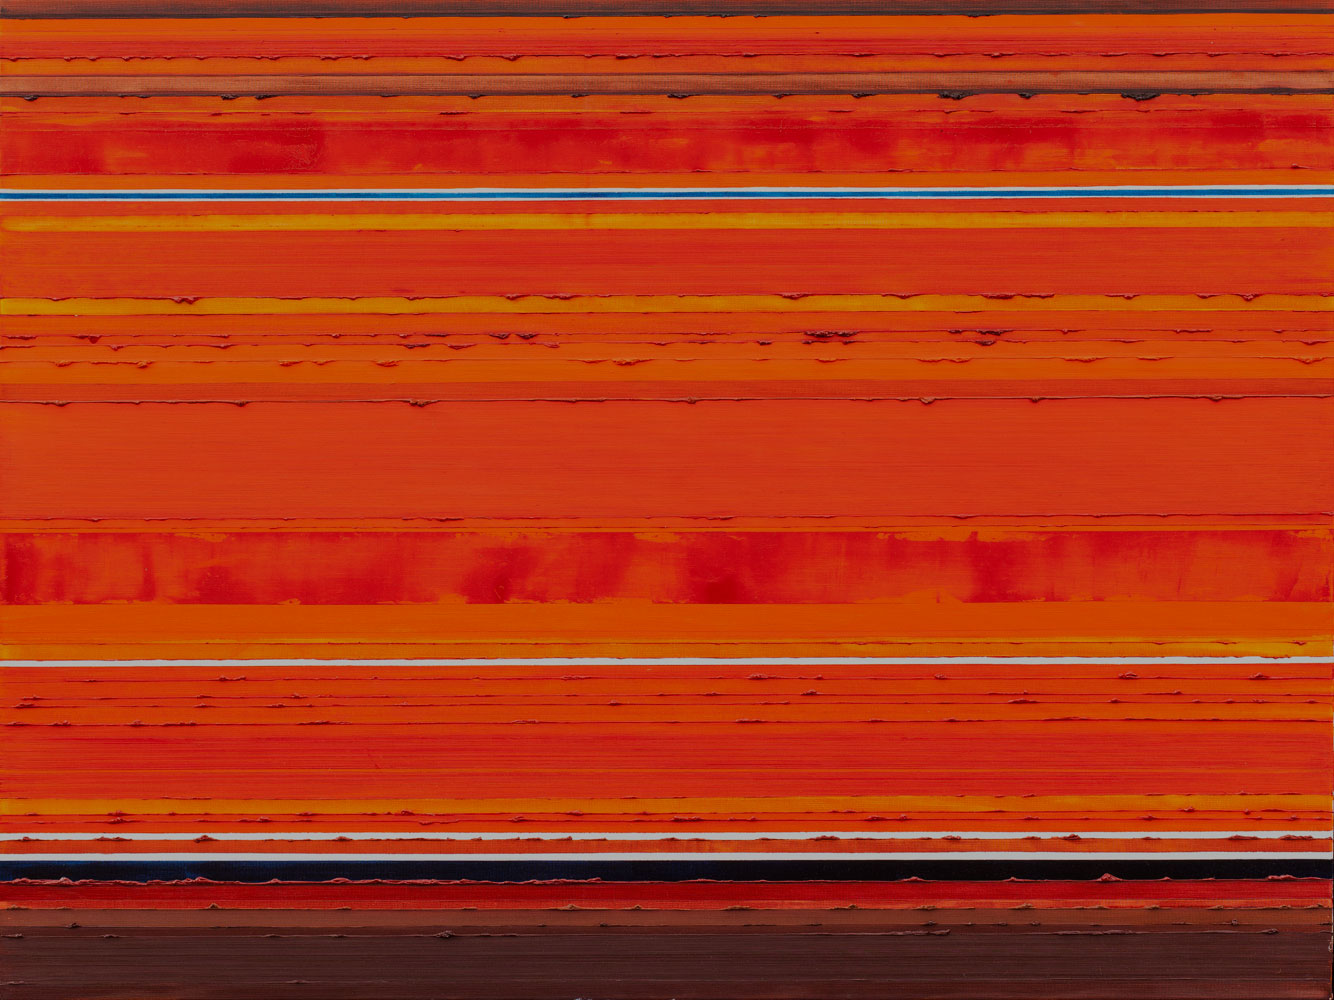 Stripes Orange Oil Painting by Rose Long